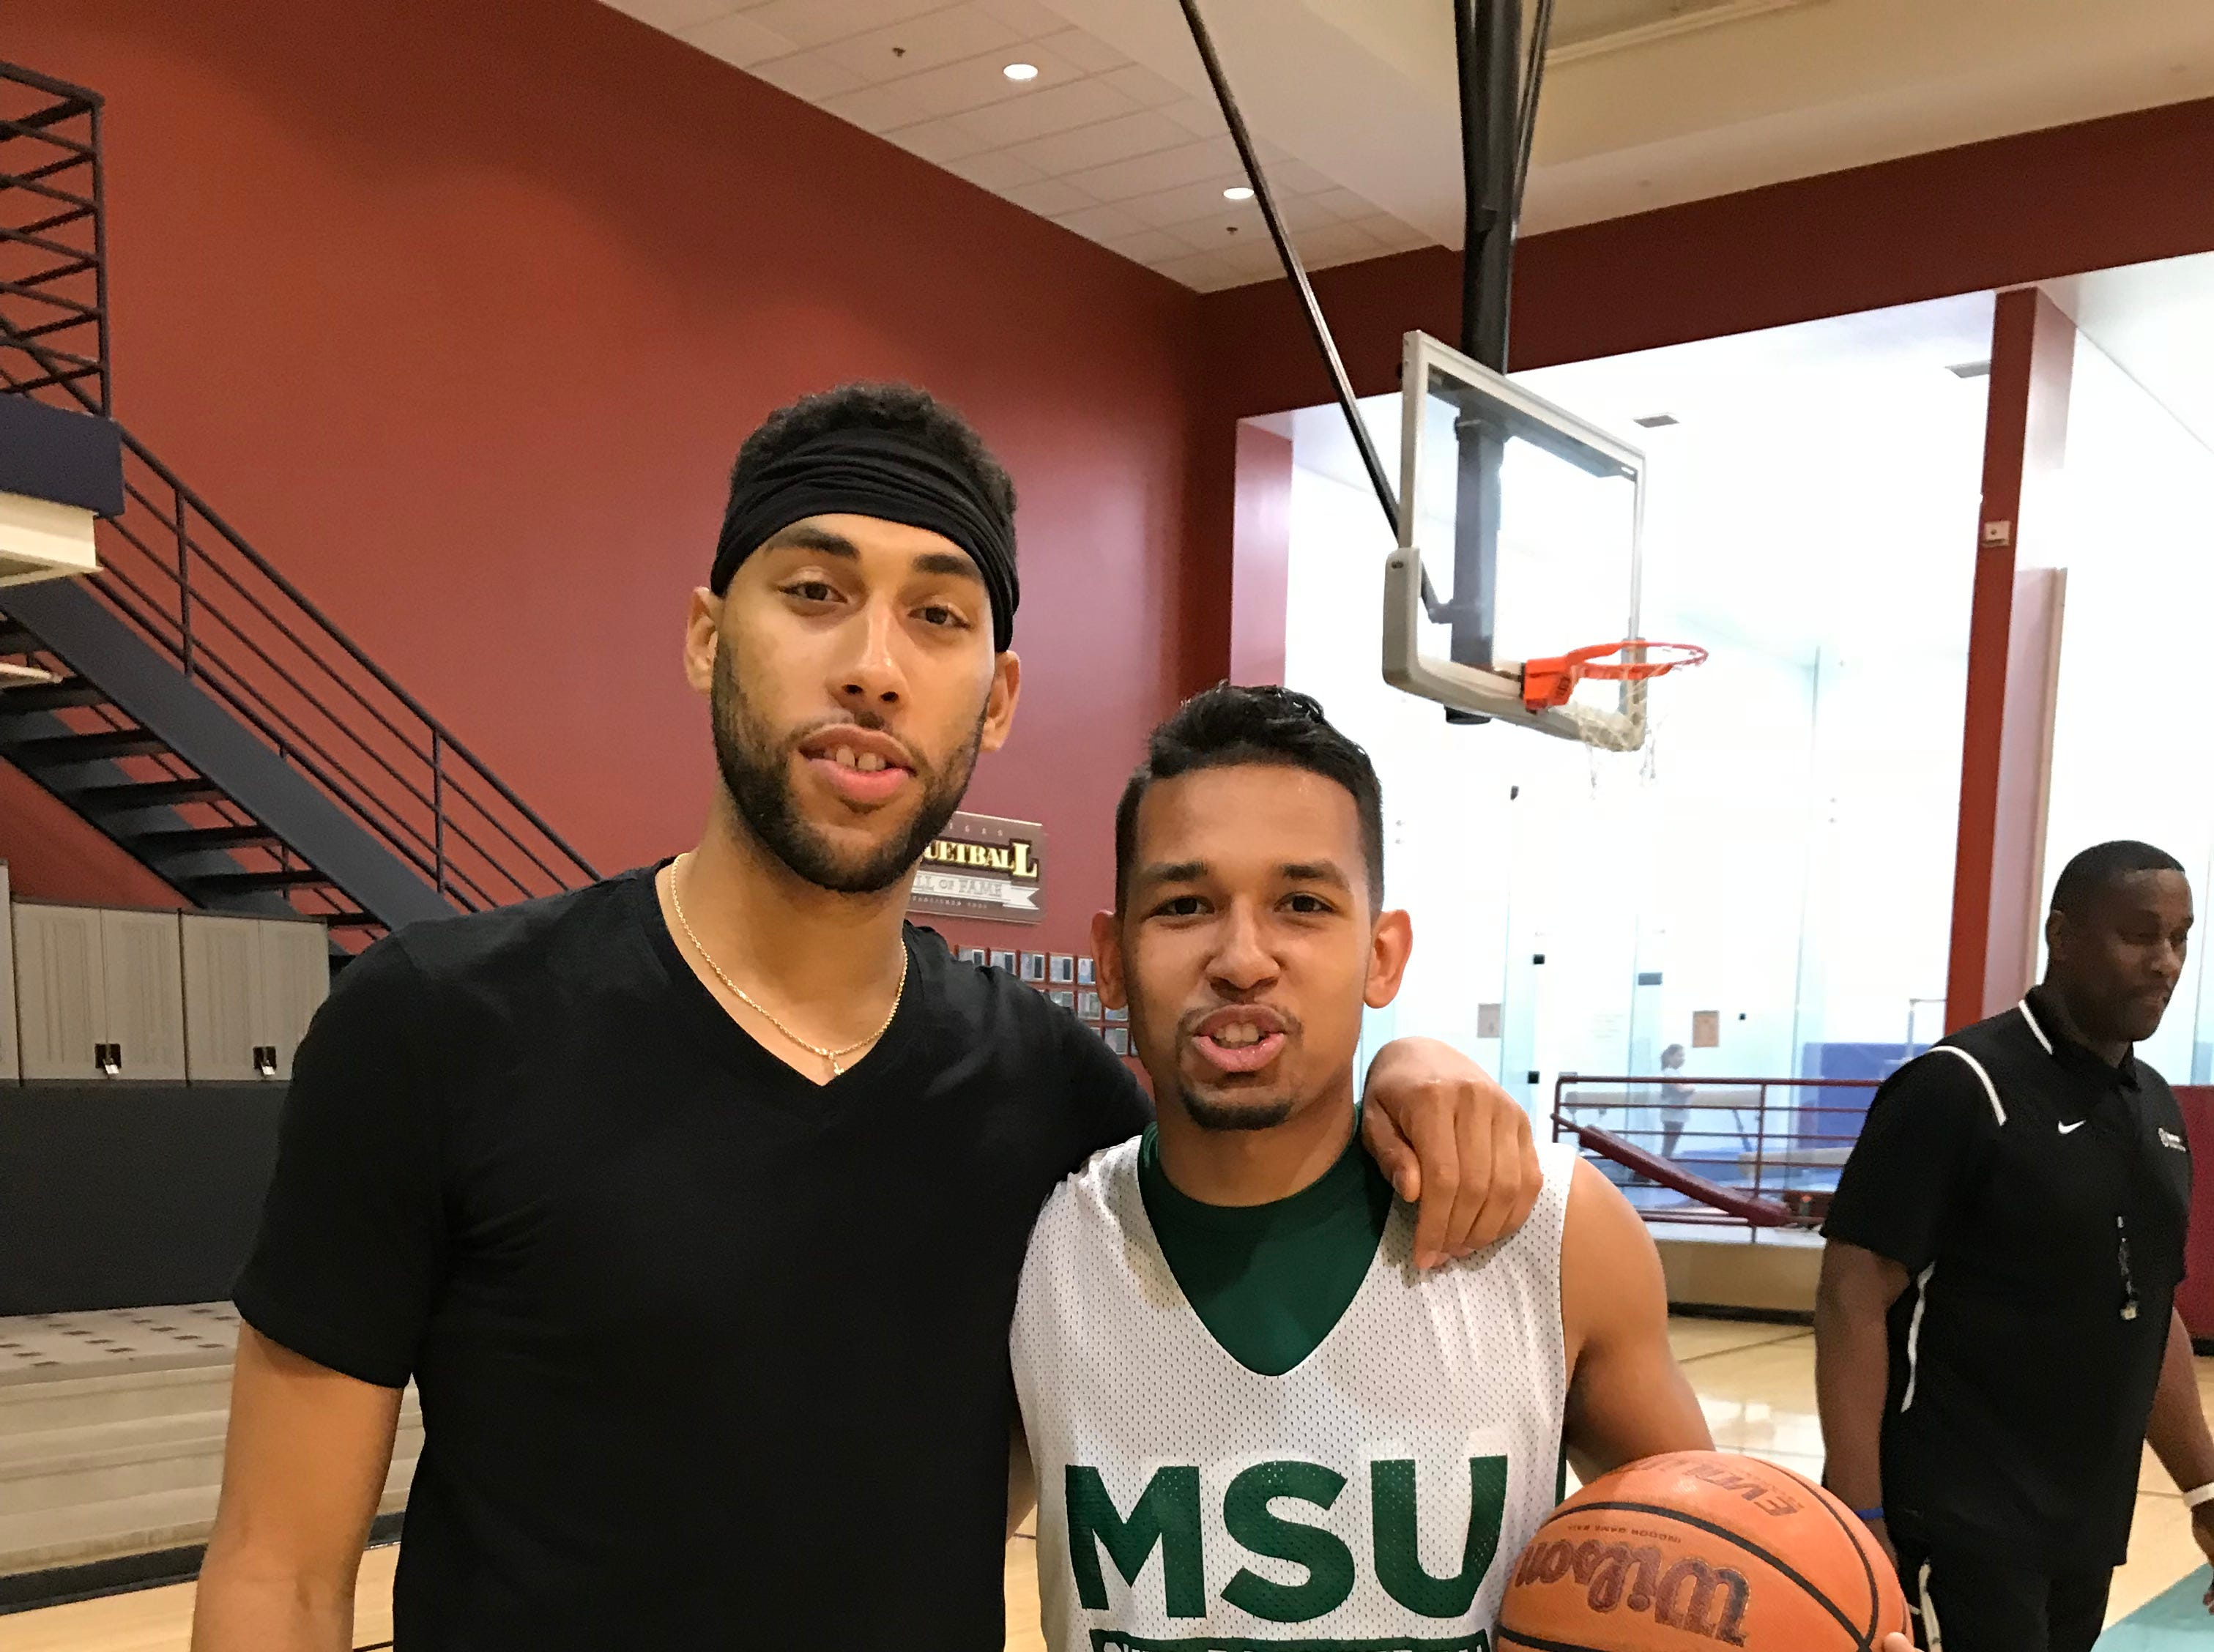 Denzel Valentine and Robert Ray Jr. were members of the state champion Sexton High School basketball team in 2011.